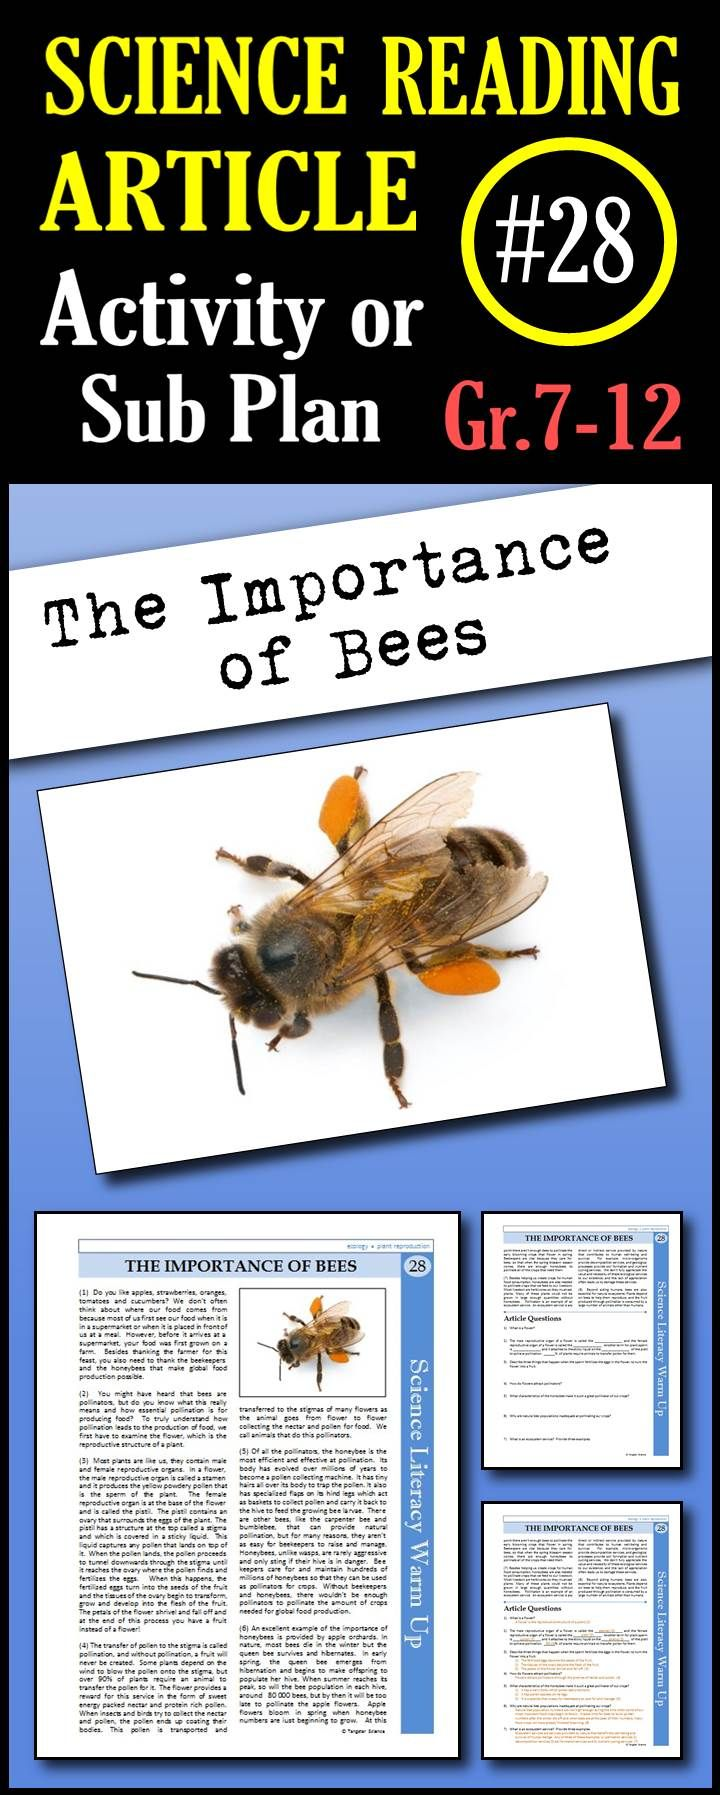 In this article, students will learn how pollination occurs, how the honeybee is specialized to collect pollen, why the honeybee is used by beekeepers over other pollinators and how critical bees are for global food production.  This is a great in class activity, homework assignment, weekly science reading assignment, sub plan or in school suspension plan. Use this to save time looking for engaging and appropriate articles with questions!